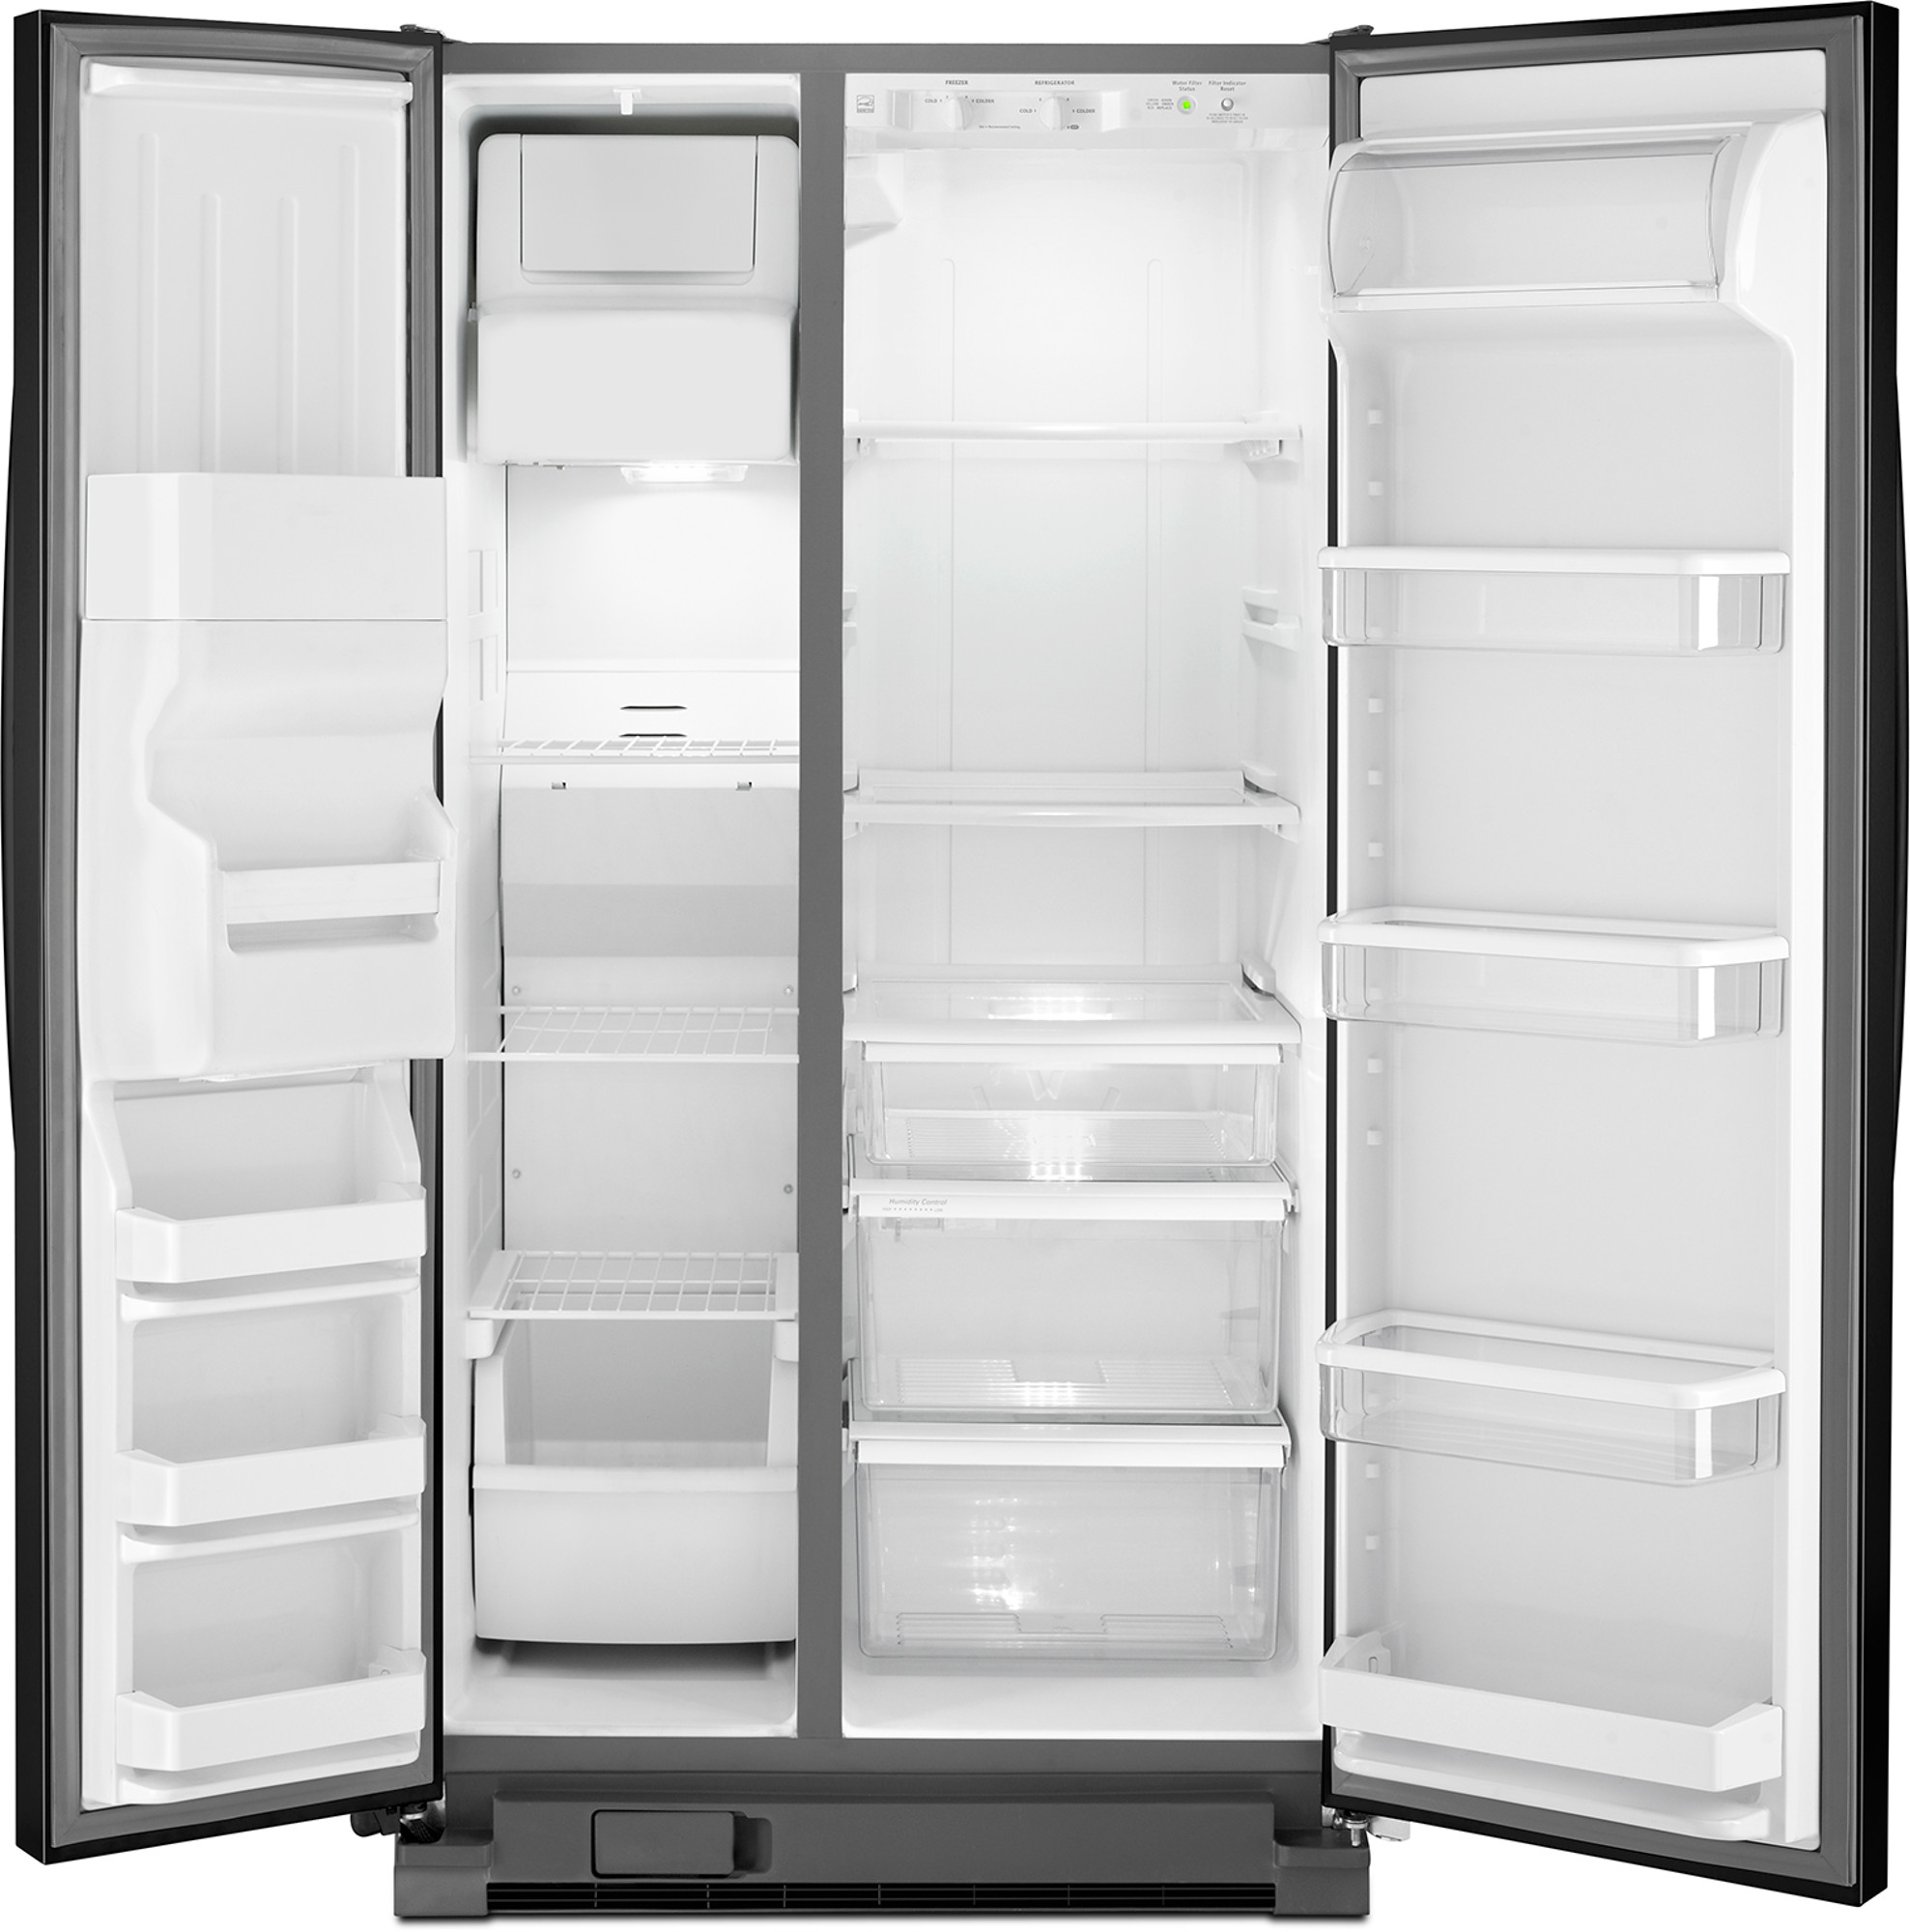 Whirlpool WRS331FDDB 21 cu. ft. Side-by-Side Refrigerator w/ Ice/Water Dispenser - Black